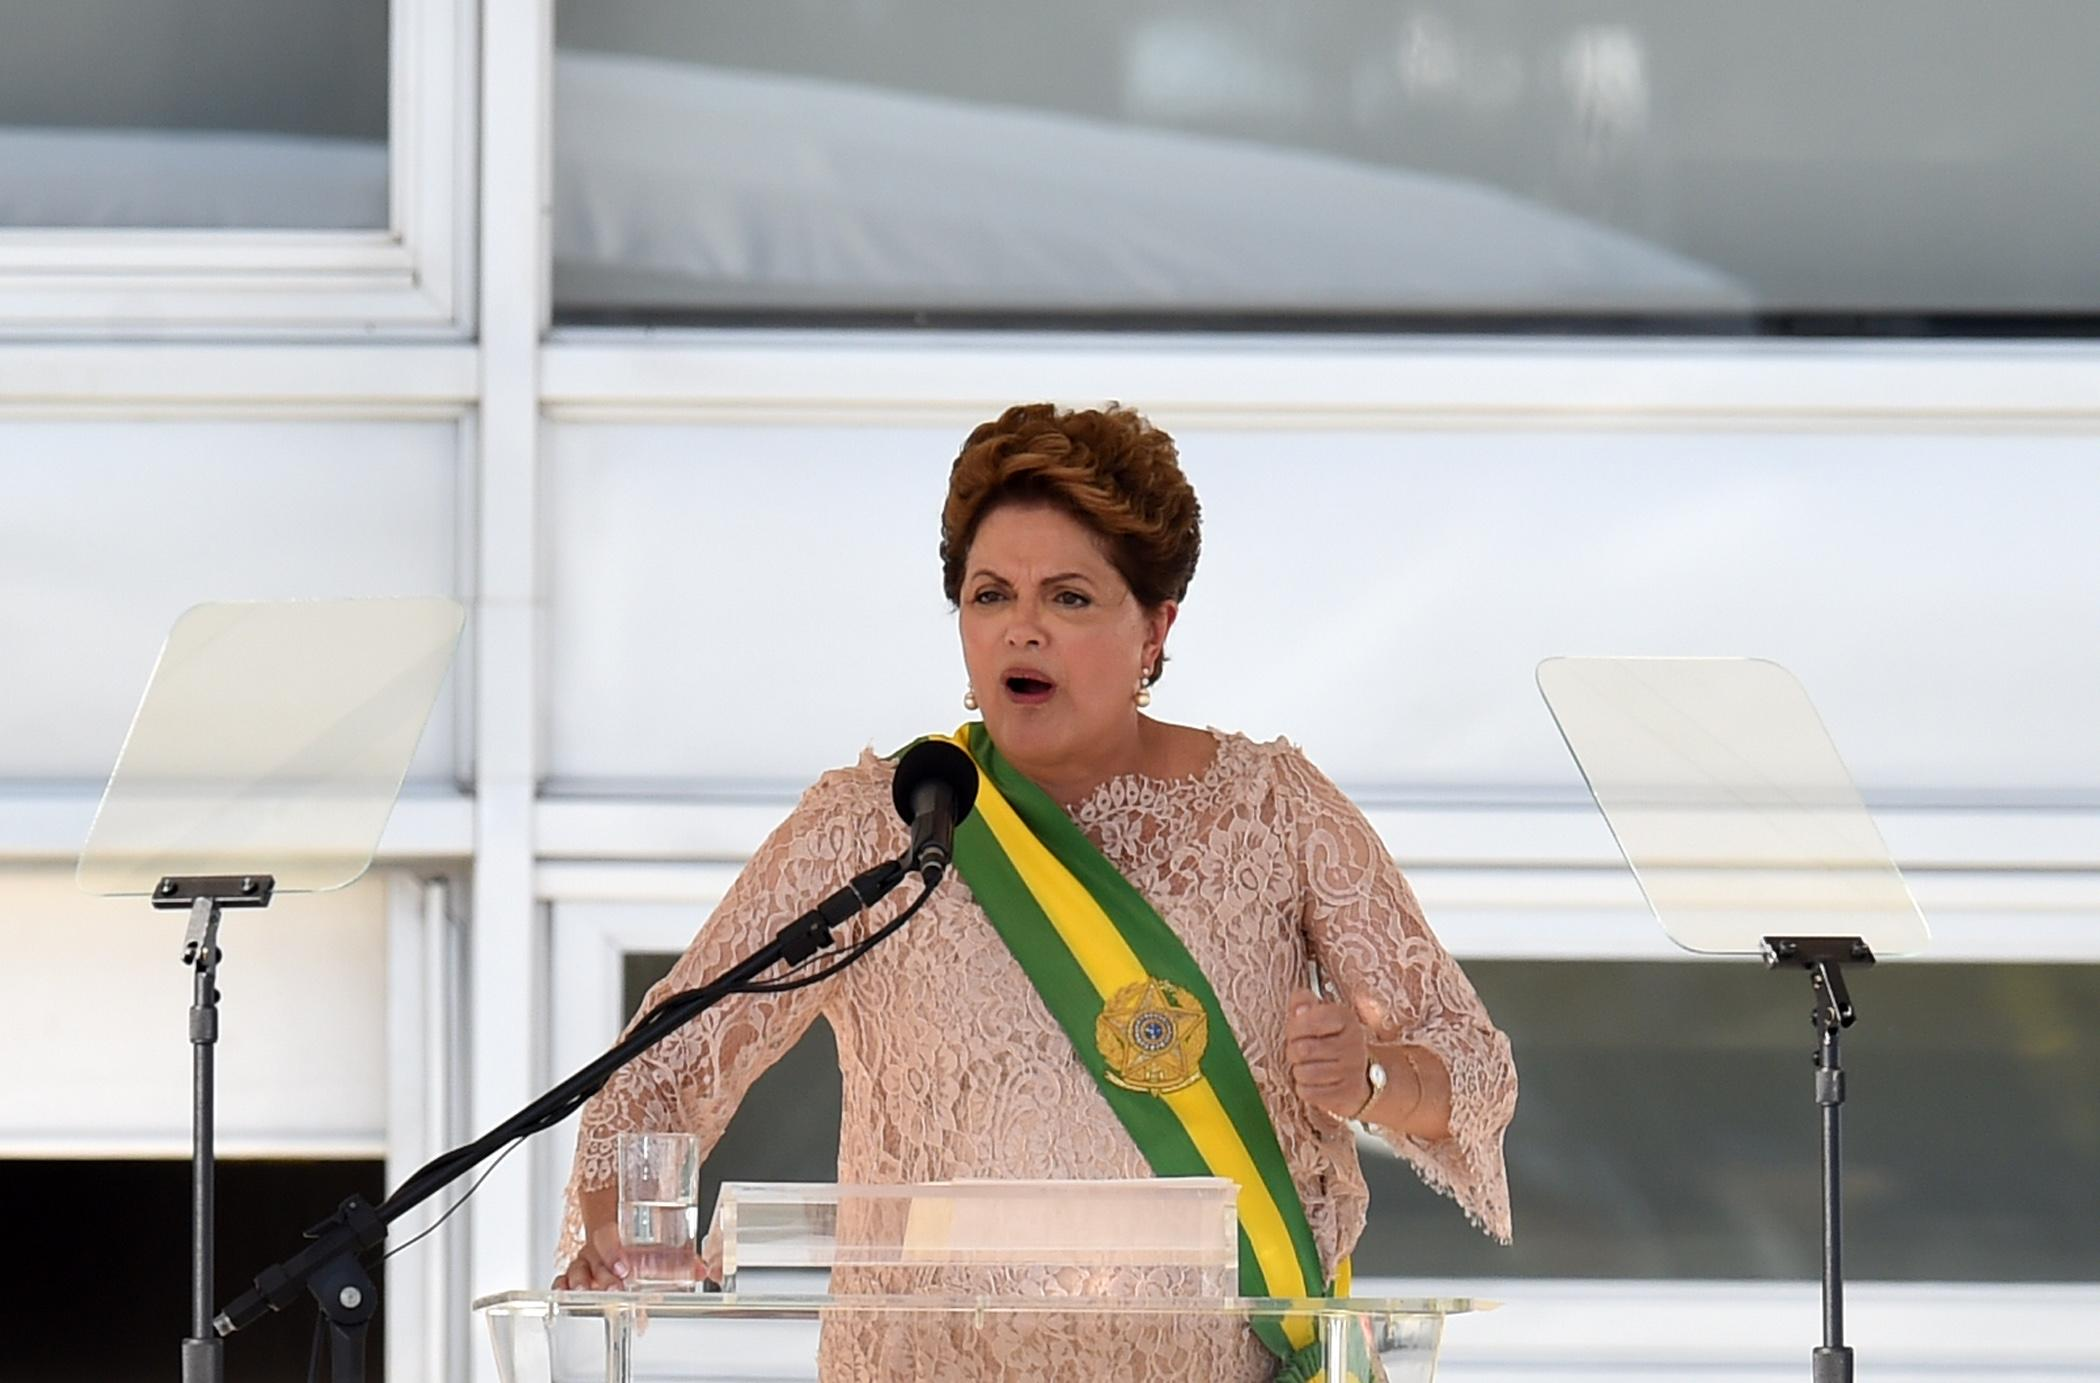 Brazil's President Dilma Rousseff delivers a speech during her second term inauguration in Brasilia, on January 1, 2015 (AFP Photo/Evaristo Sa)